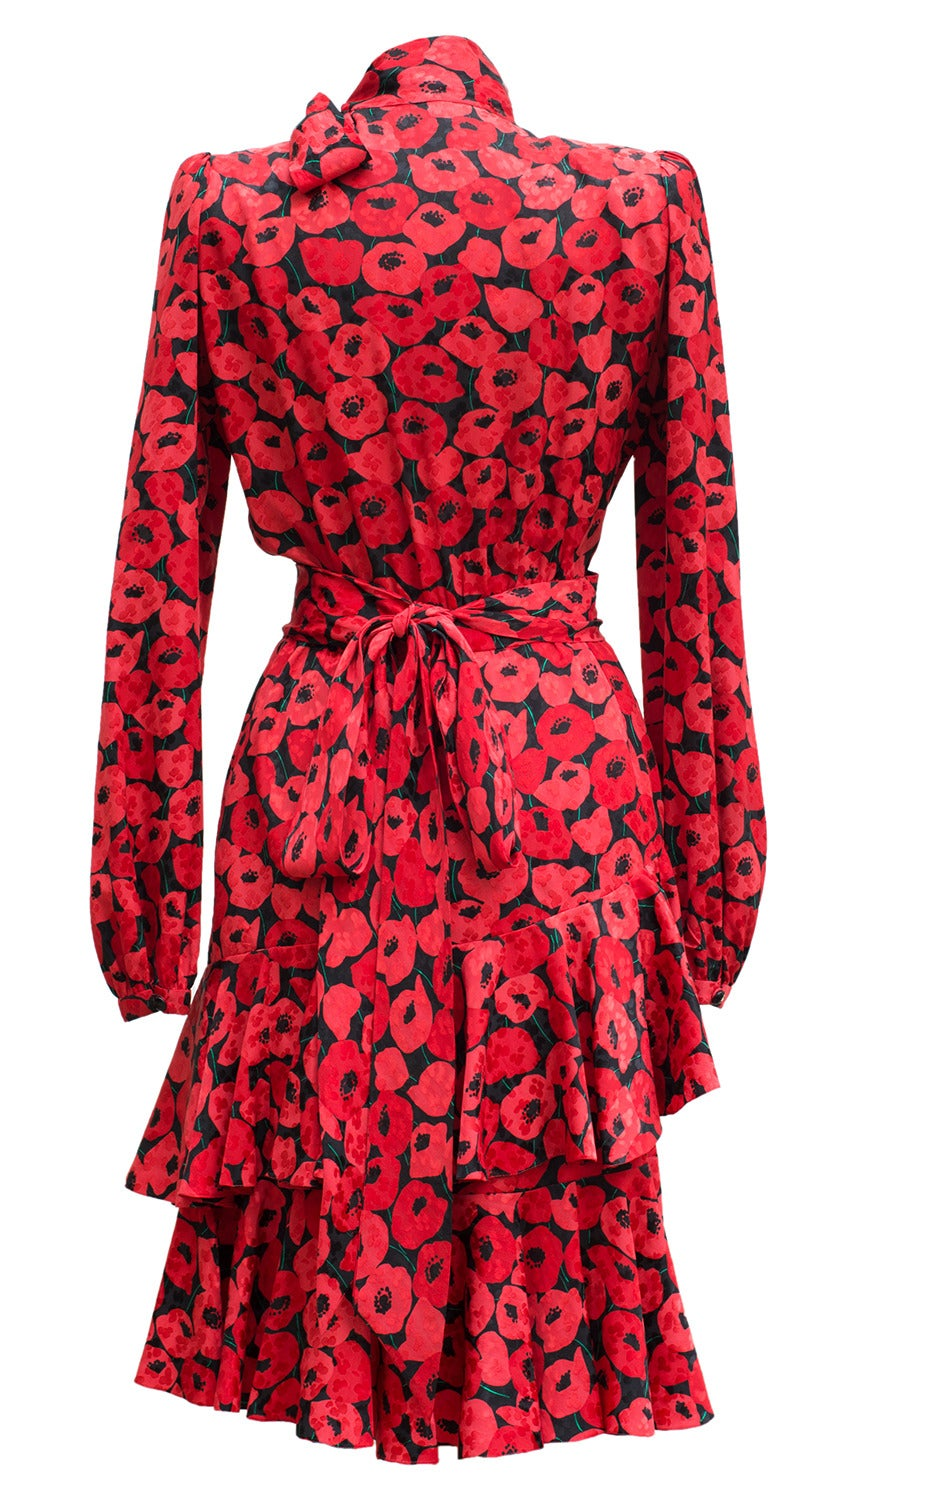 1983 Yves Saint Laurent Couture Stunning Print Black and Red Silk Dress 2